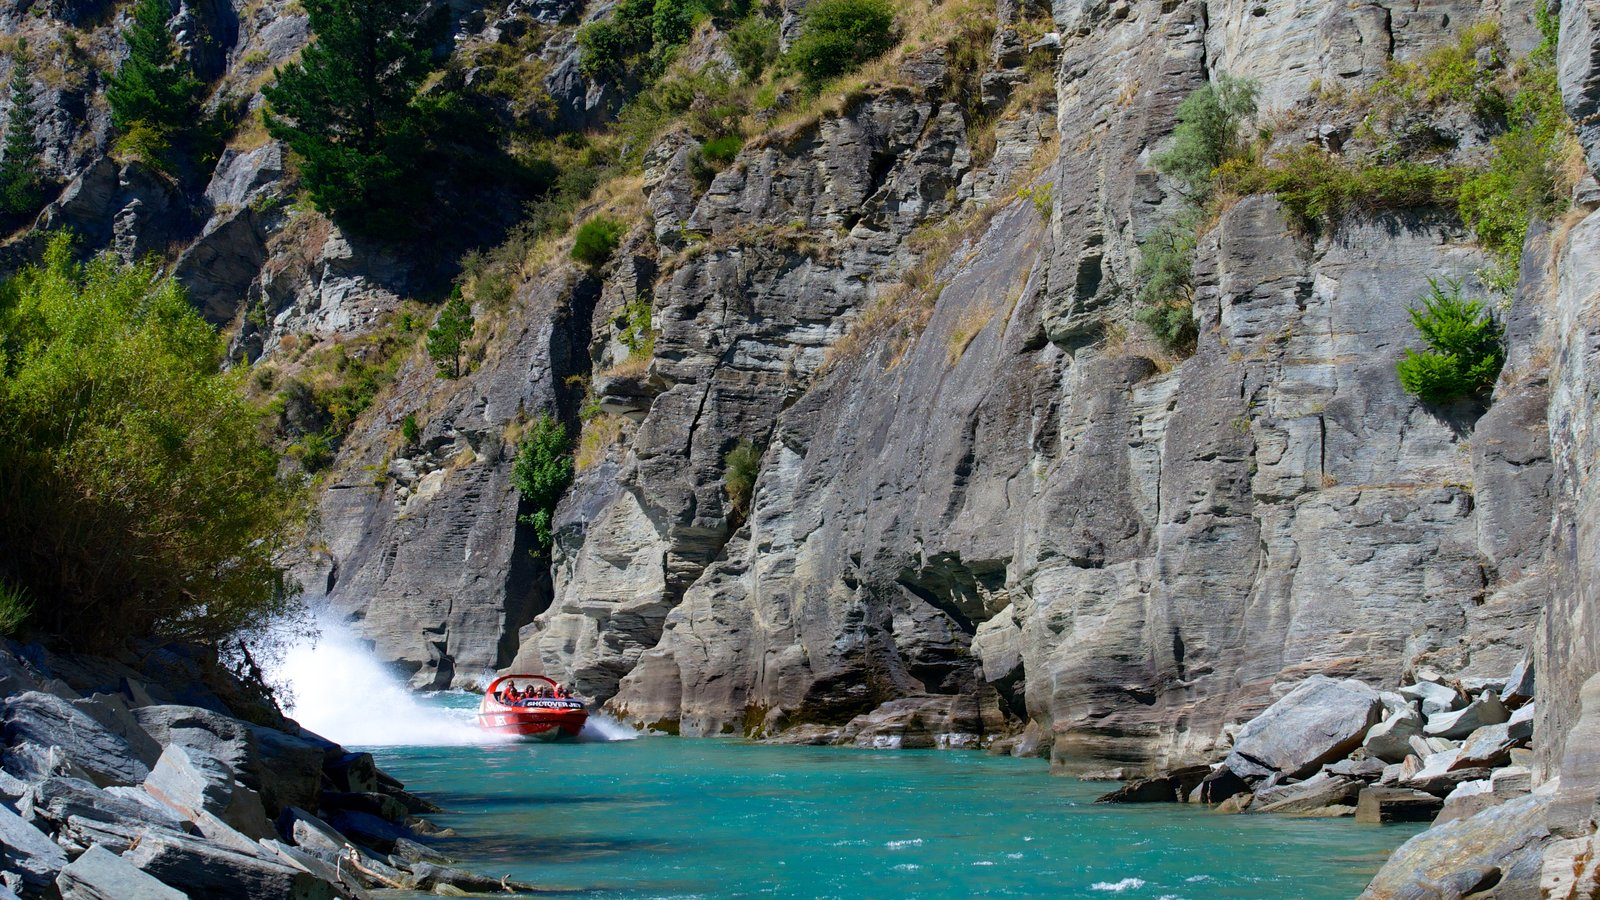 Queenstown featuring boating and a river or creek